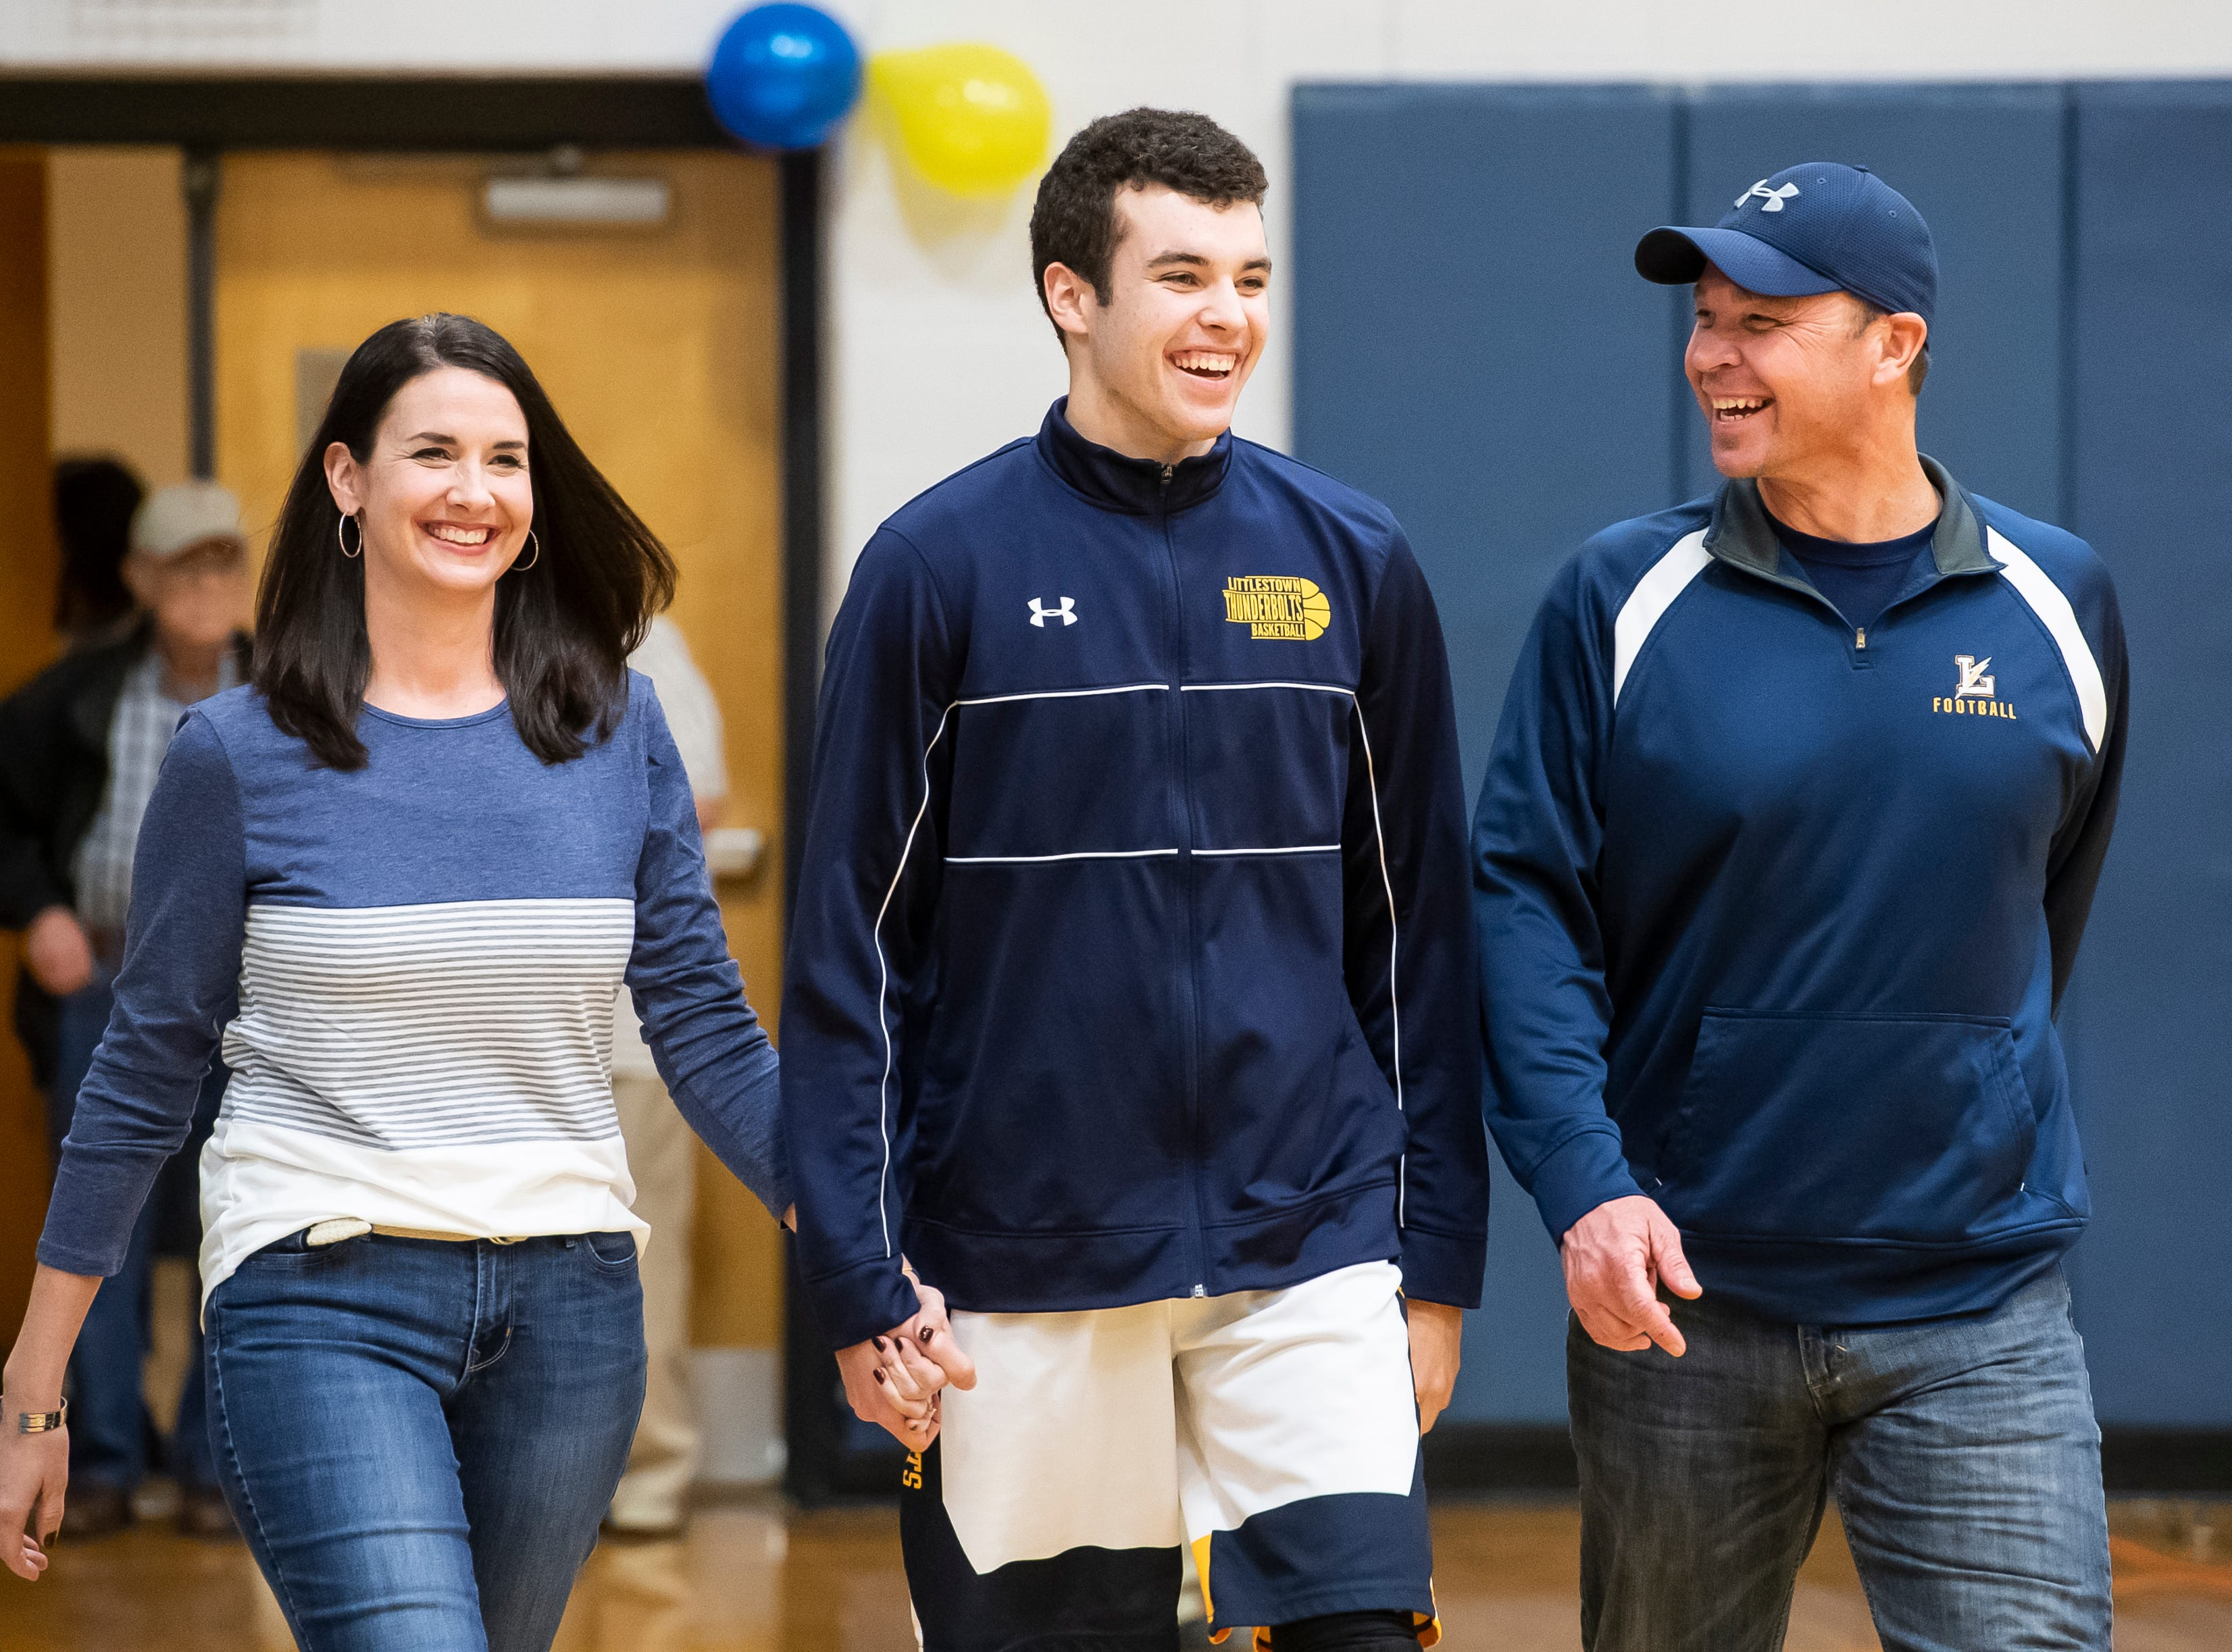 Littlestown's Jacob Thomas is honored during senior night Tuesday, February 5, 2019.